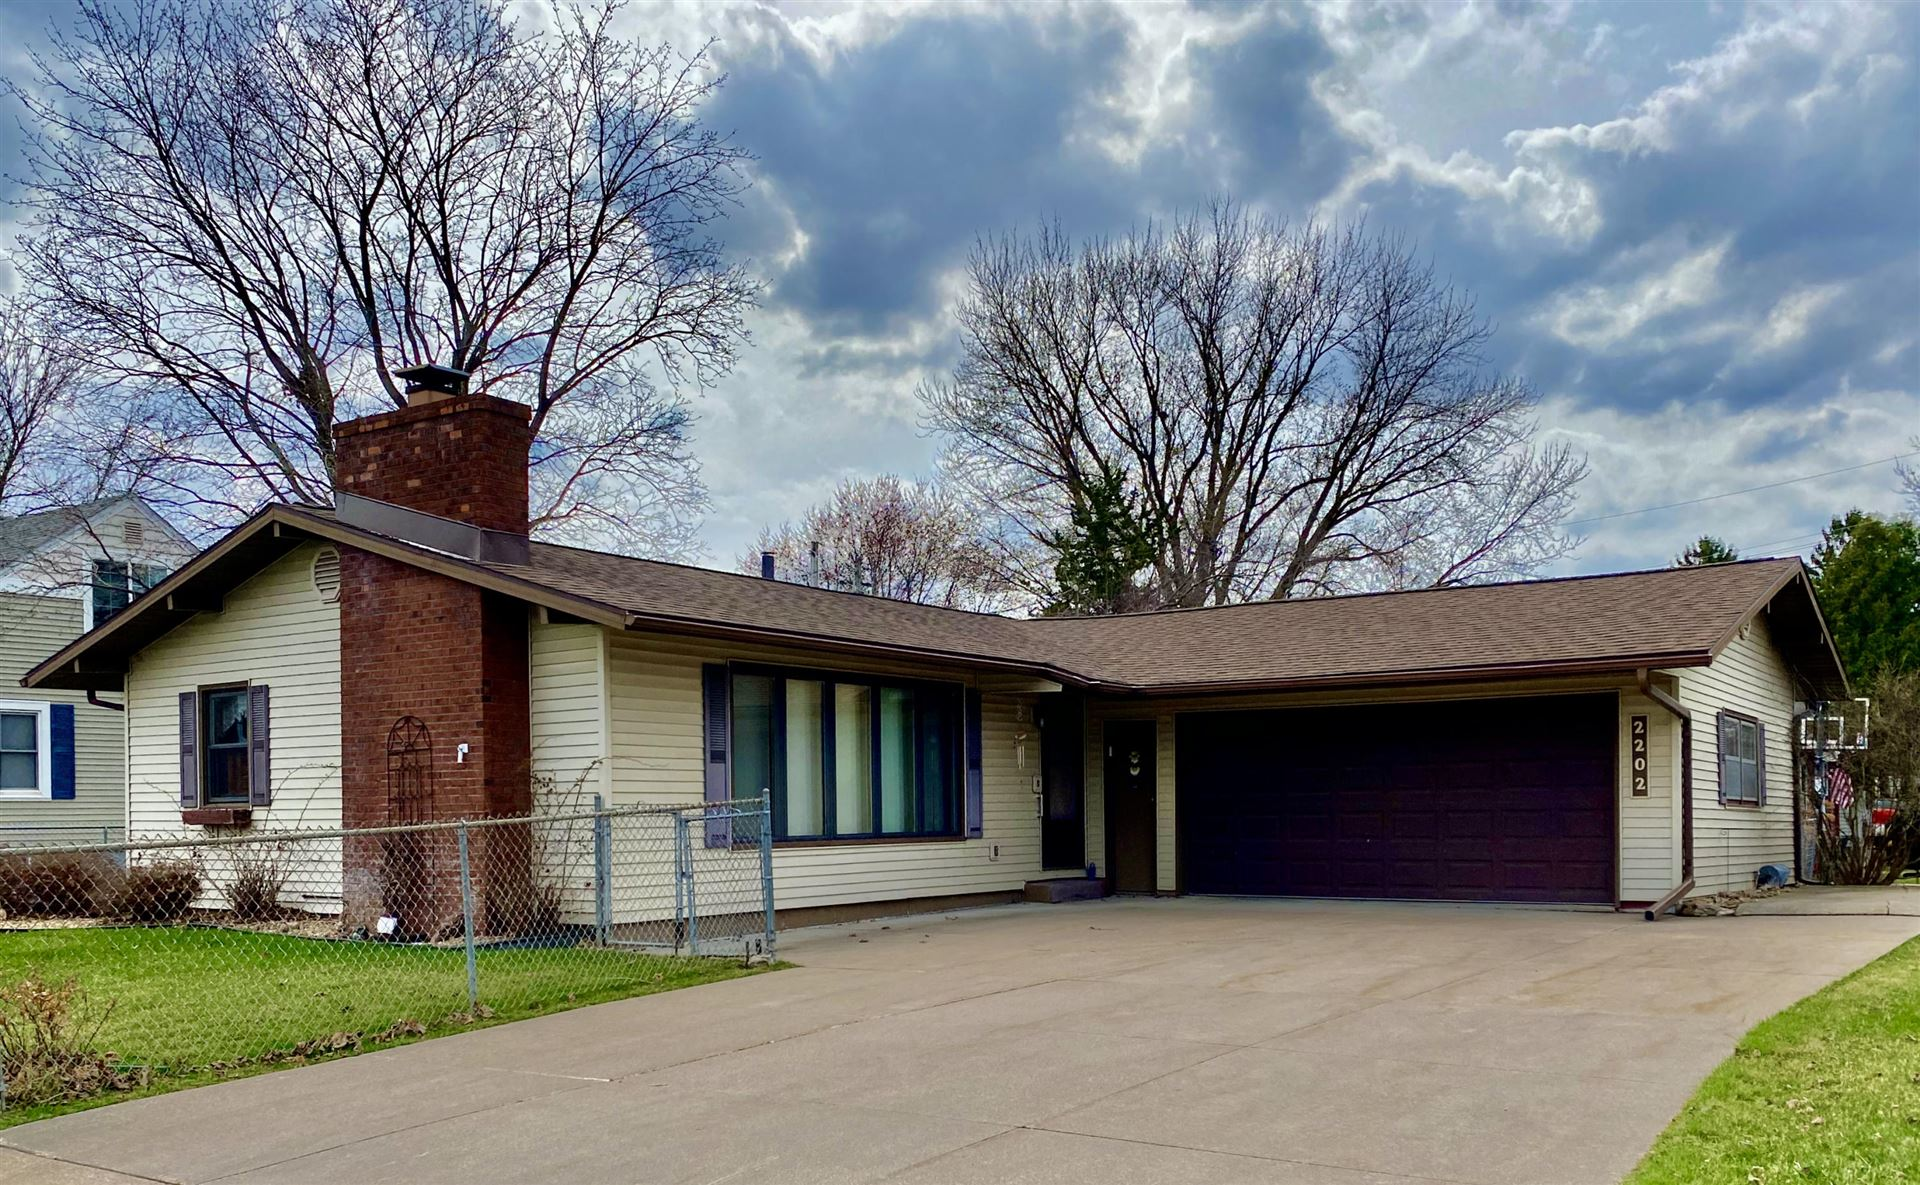 2202 30th St S, La Crosse, WI 54601 - MLS#: 1733831